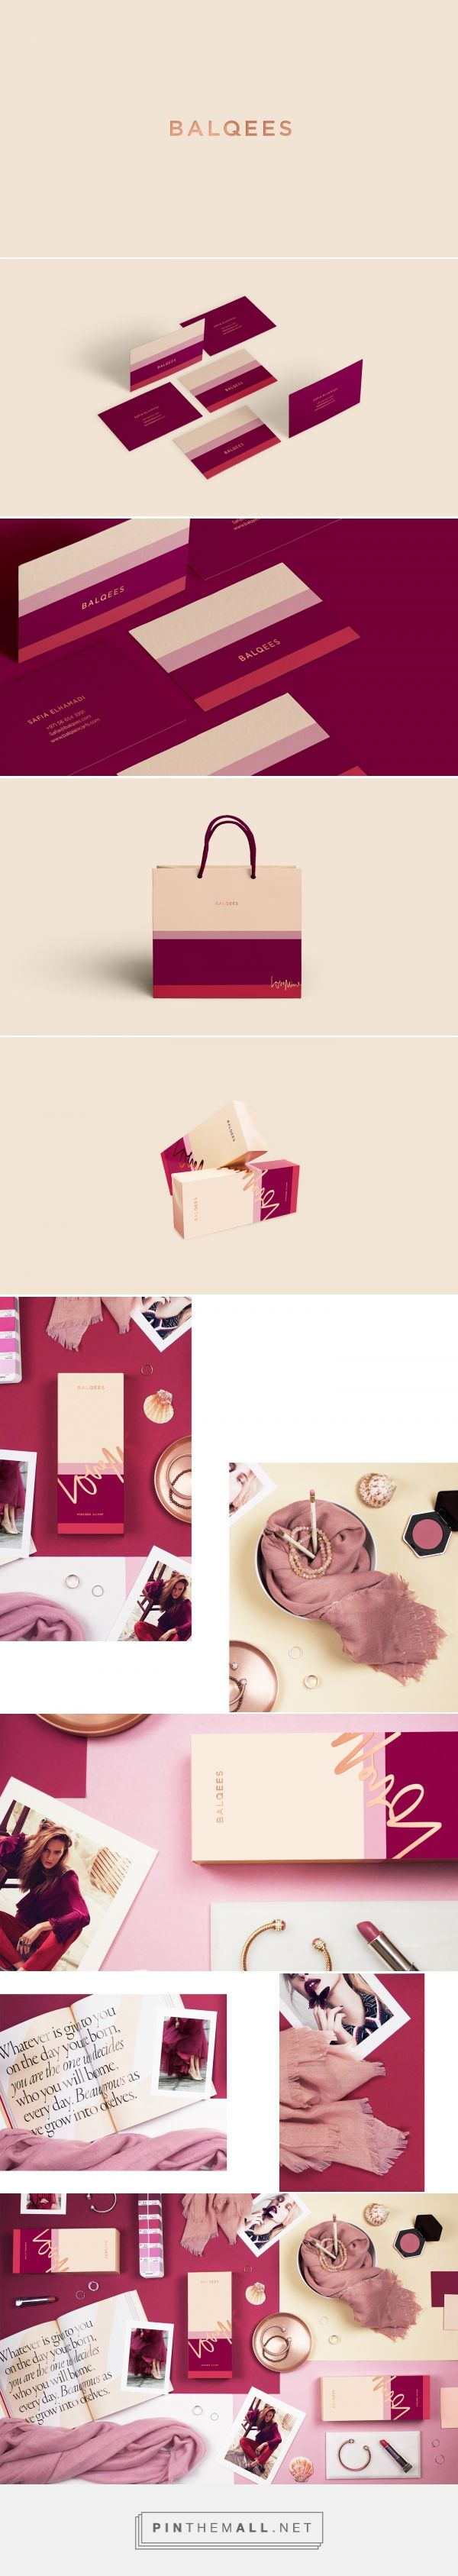 Balqees Fashion Branding and Packaging by Alaa Amra | Fivestar Branding Agency – Design and Branding Agency & Curated Inspiration Gallery